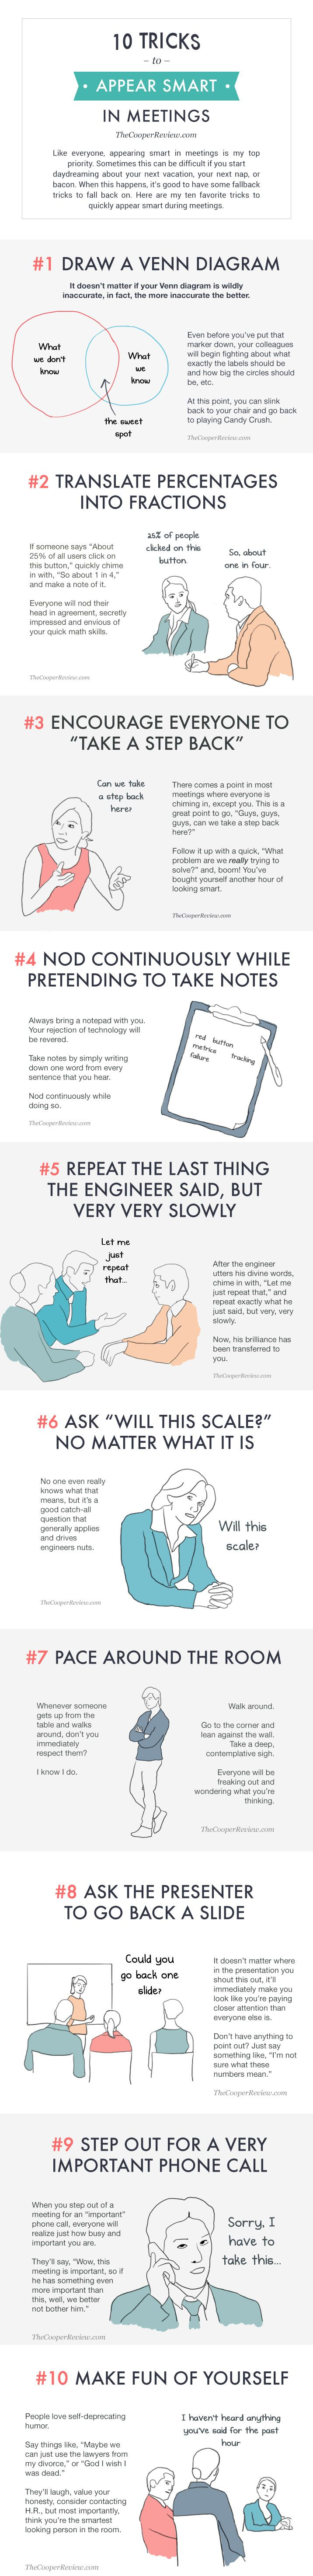 10 Potentially Ridiculous, Potentially Brilliant Ways to Look Smart in a Meeting